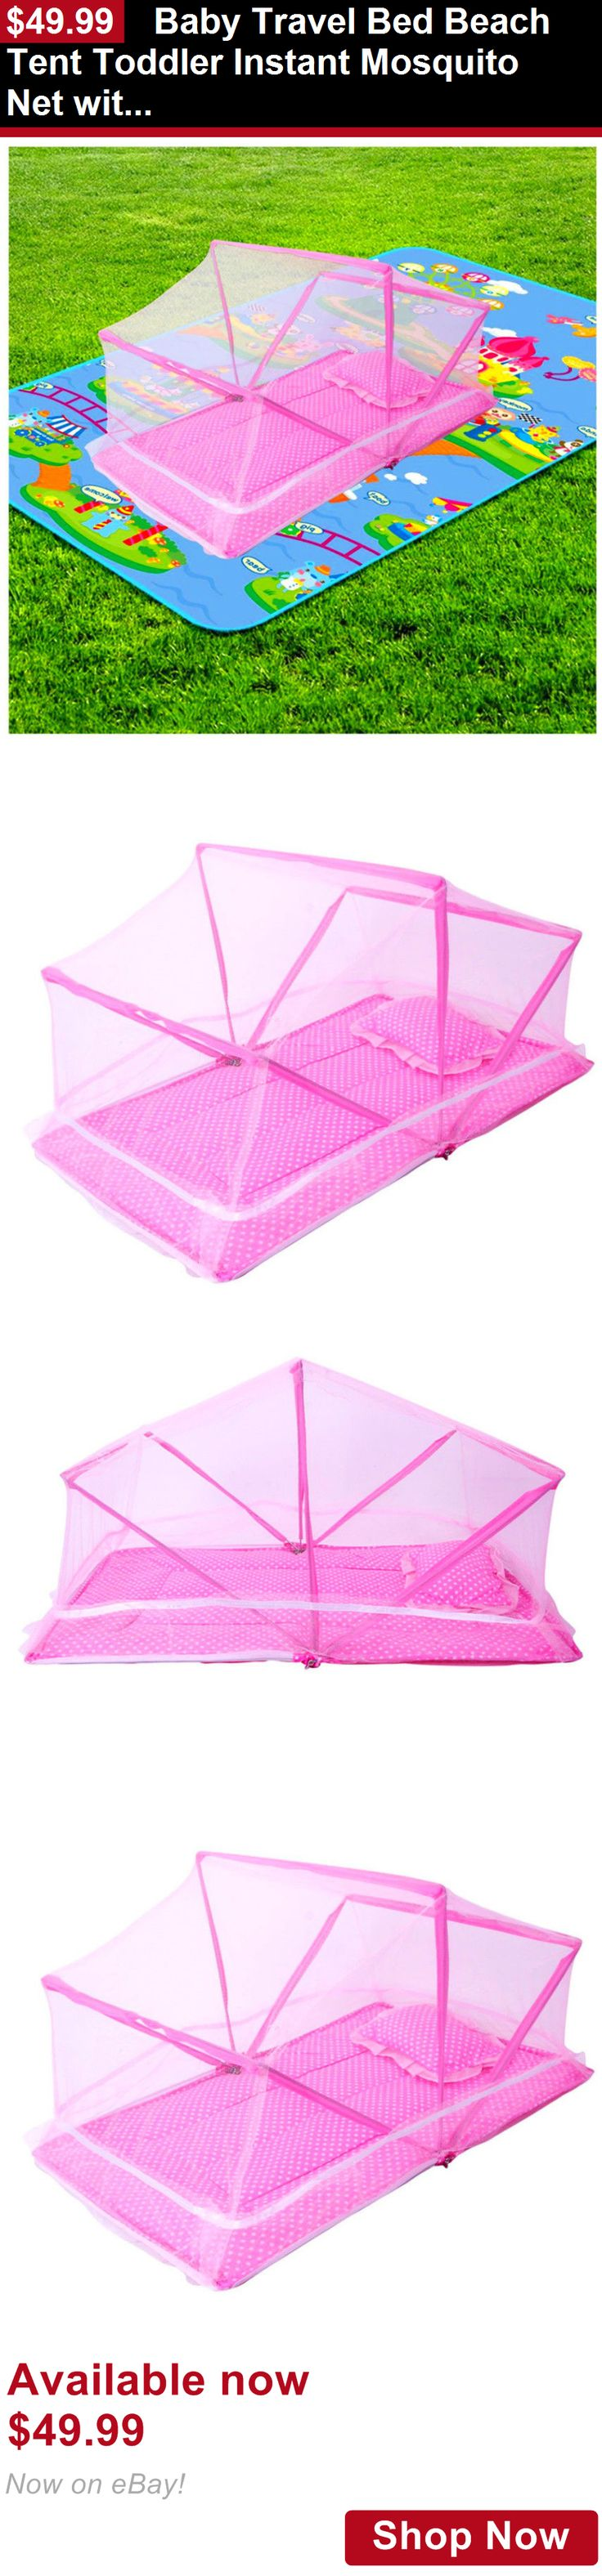 Baby play shades and tents: Baby Travel Bed Beach Tent Toddler Instant Mosquito Net With Mattres Girls Gift BUY IT NOW ONLY: $49.99